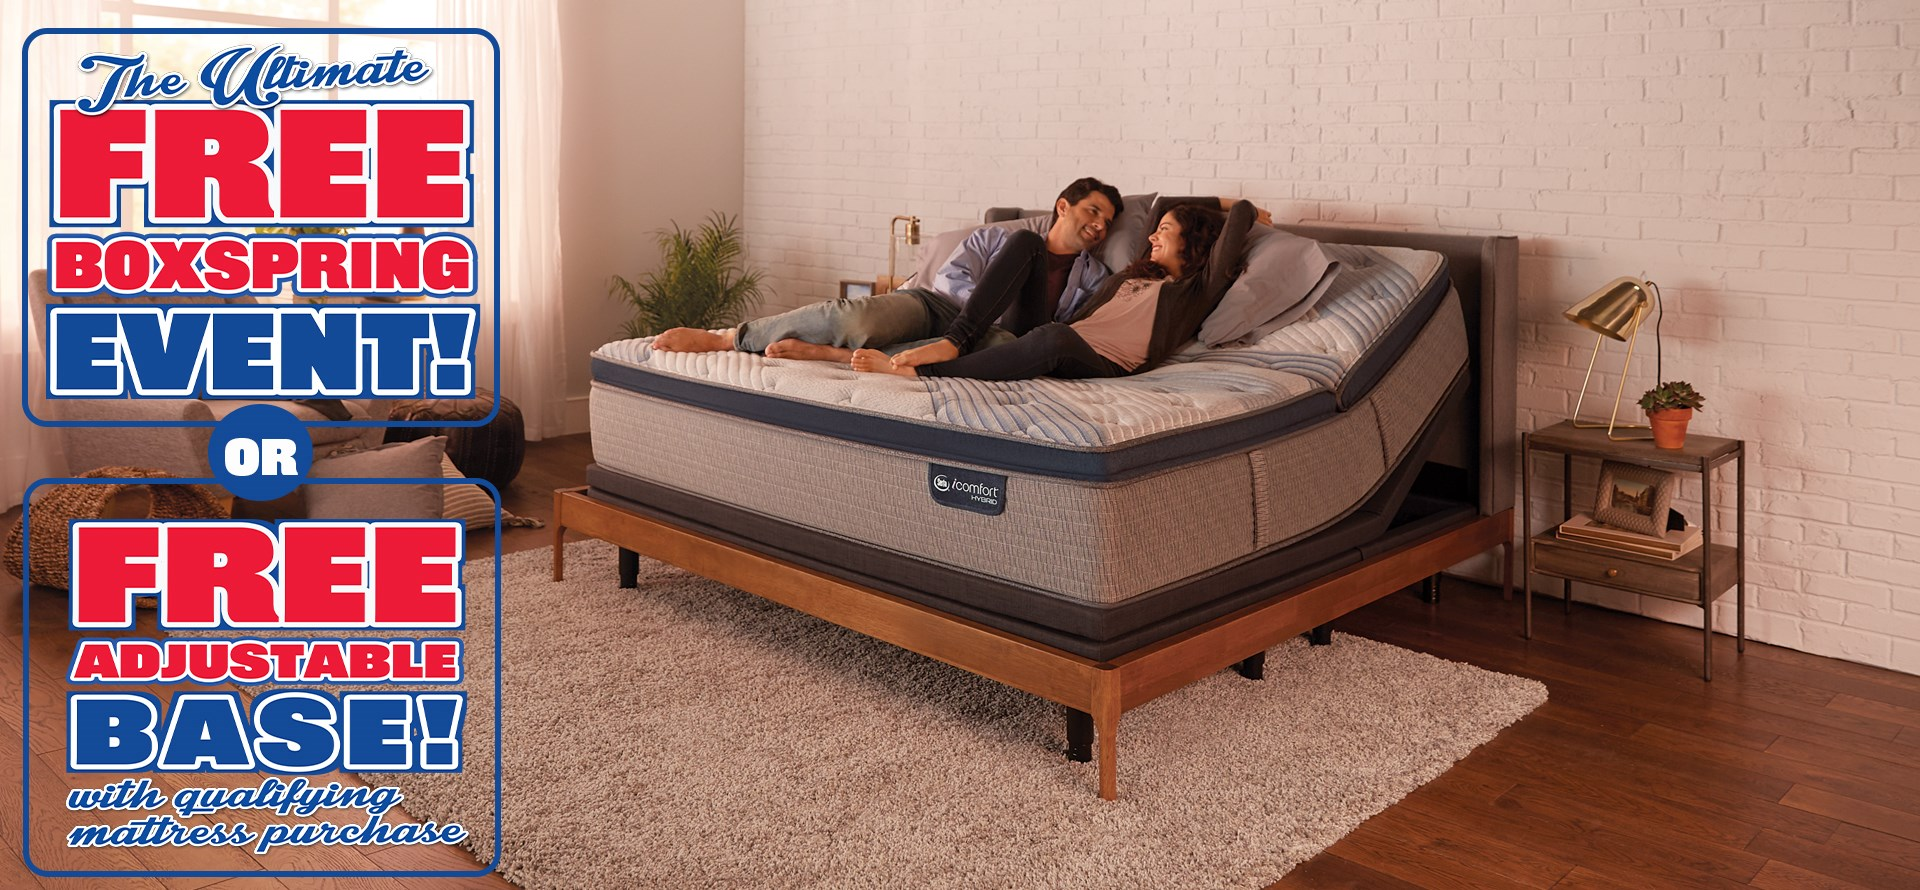 The Ultimate Free Boxspring Event, going on now!